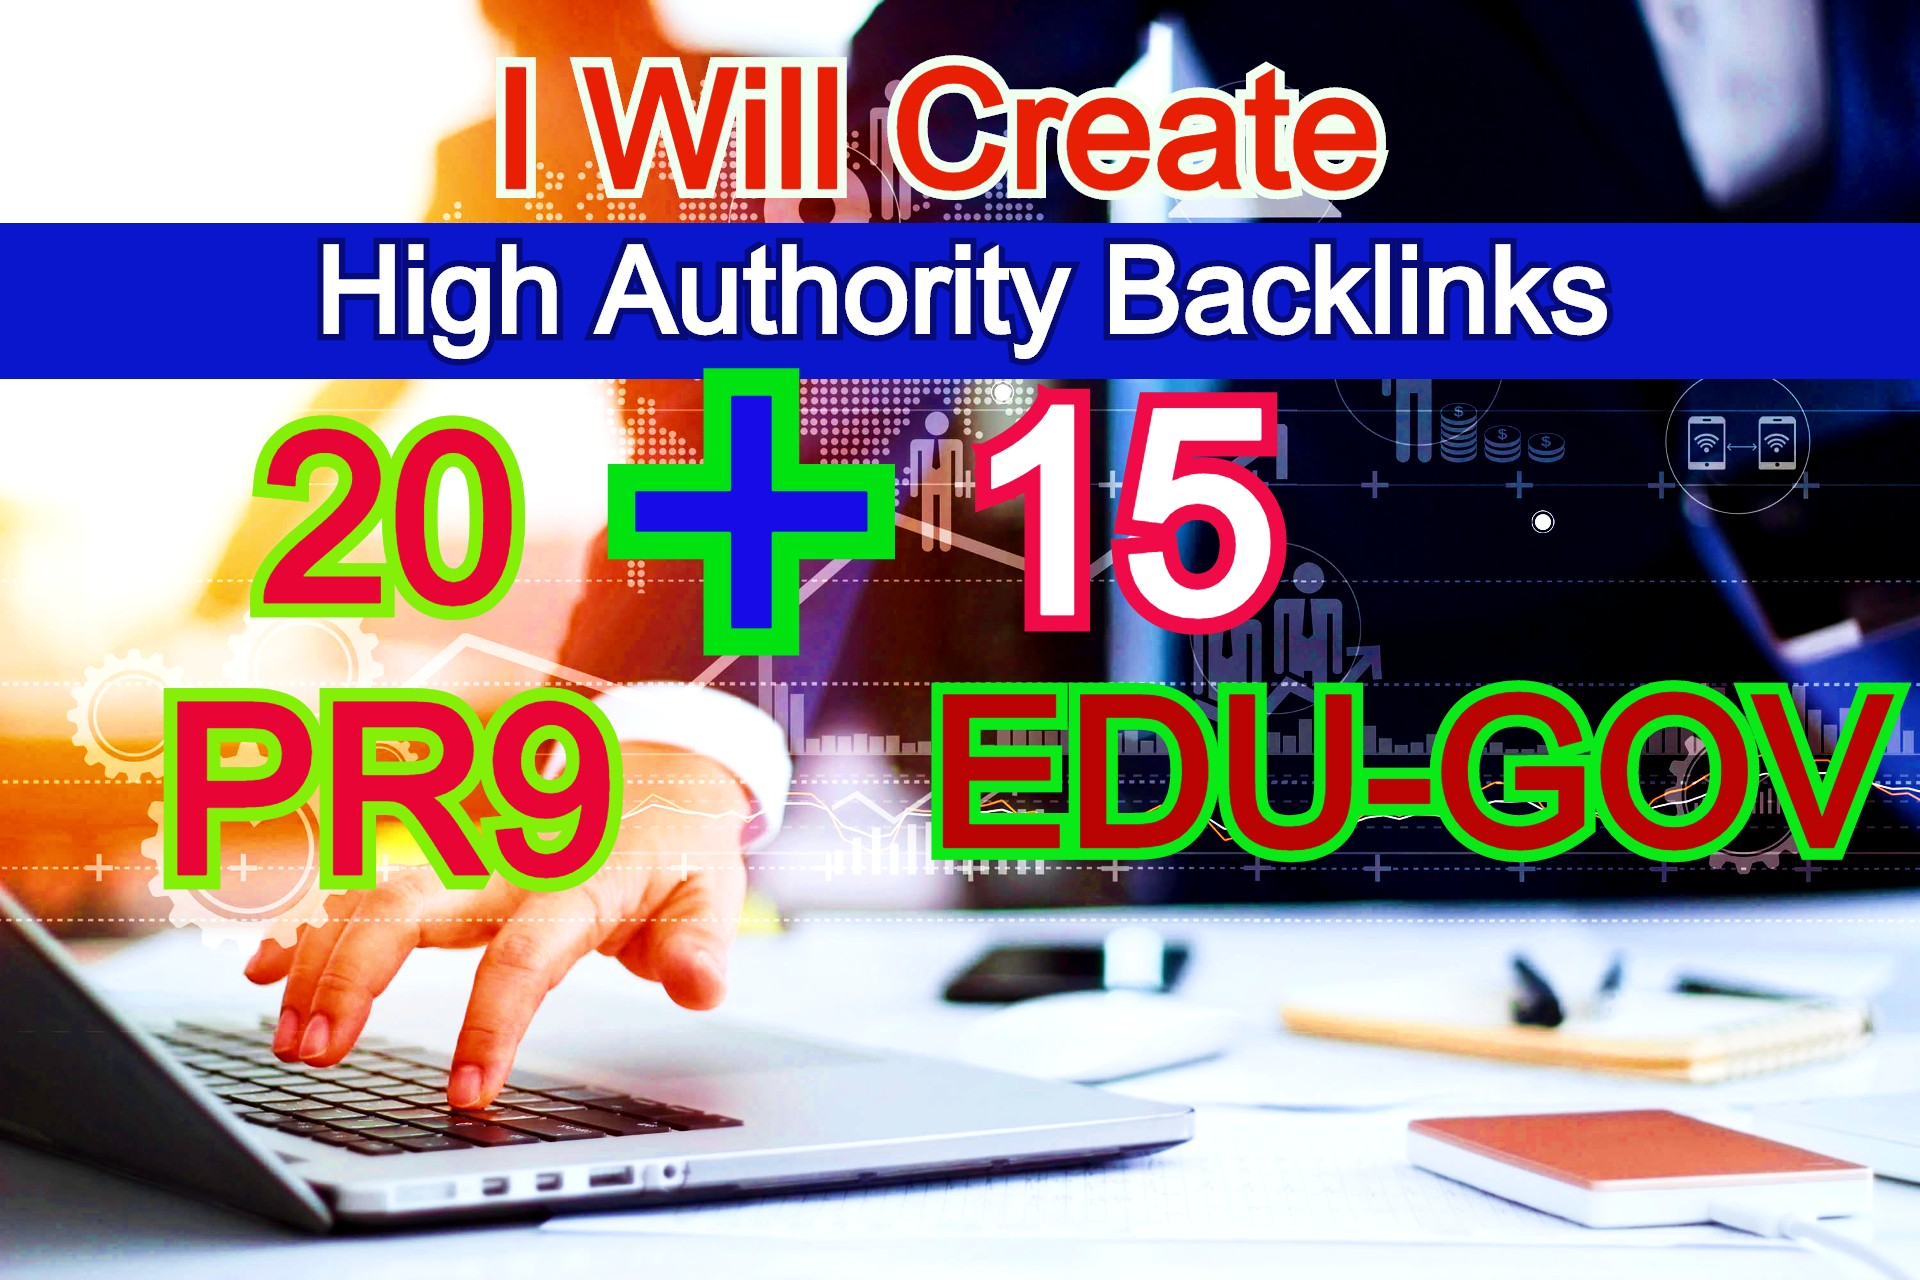 I Will Create High Authority Backlinks 20 PR9 And 15 EDU-Gov Profile Links